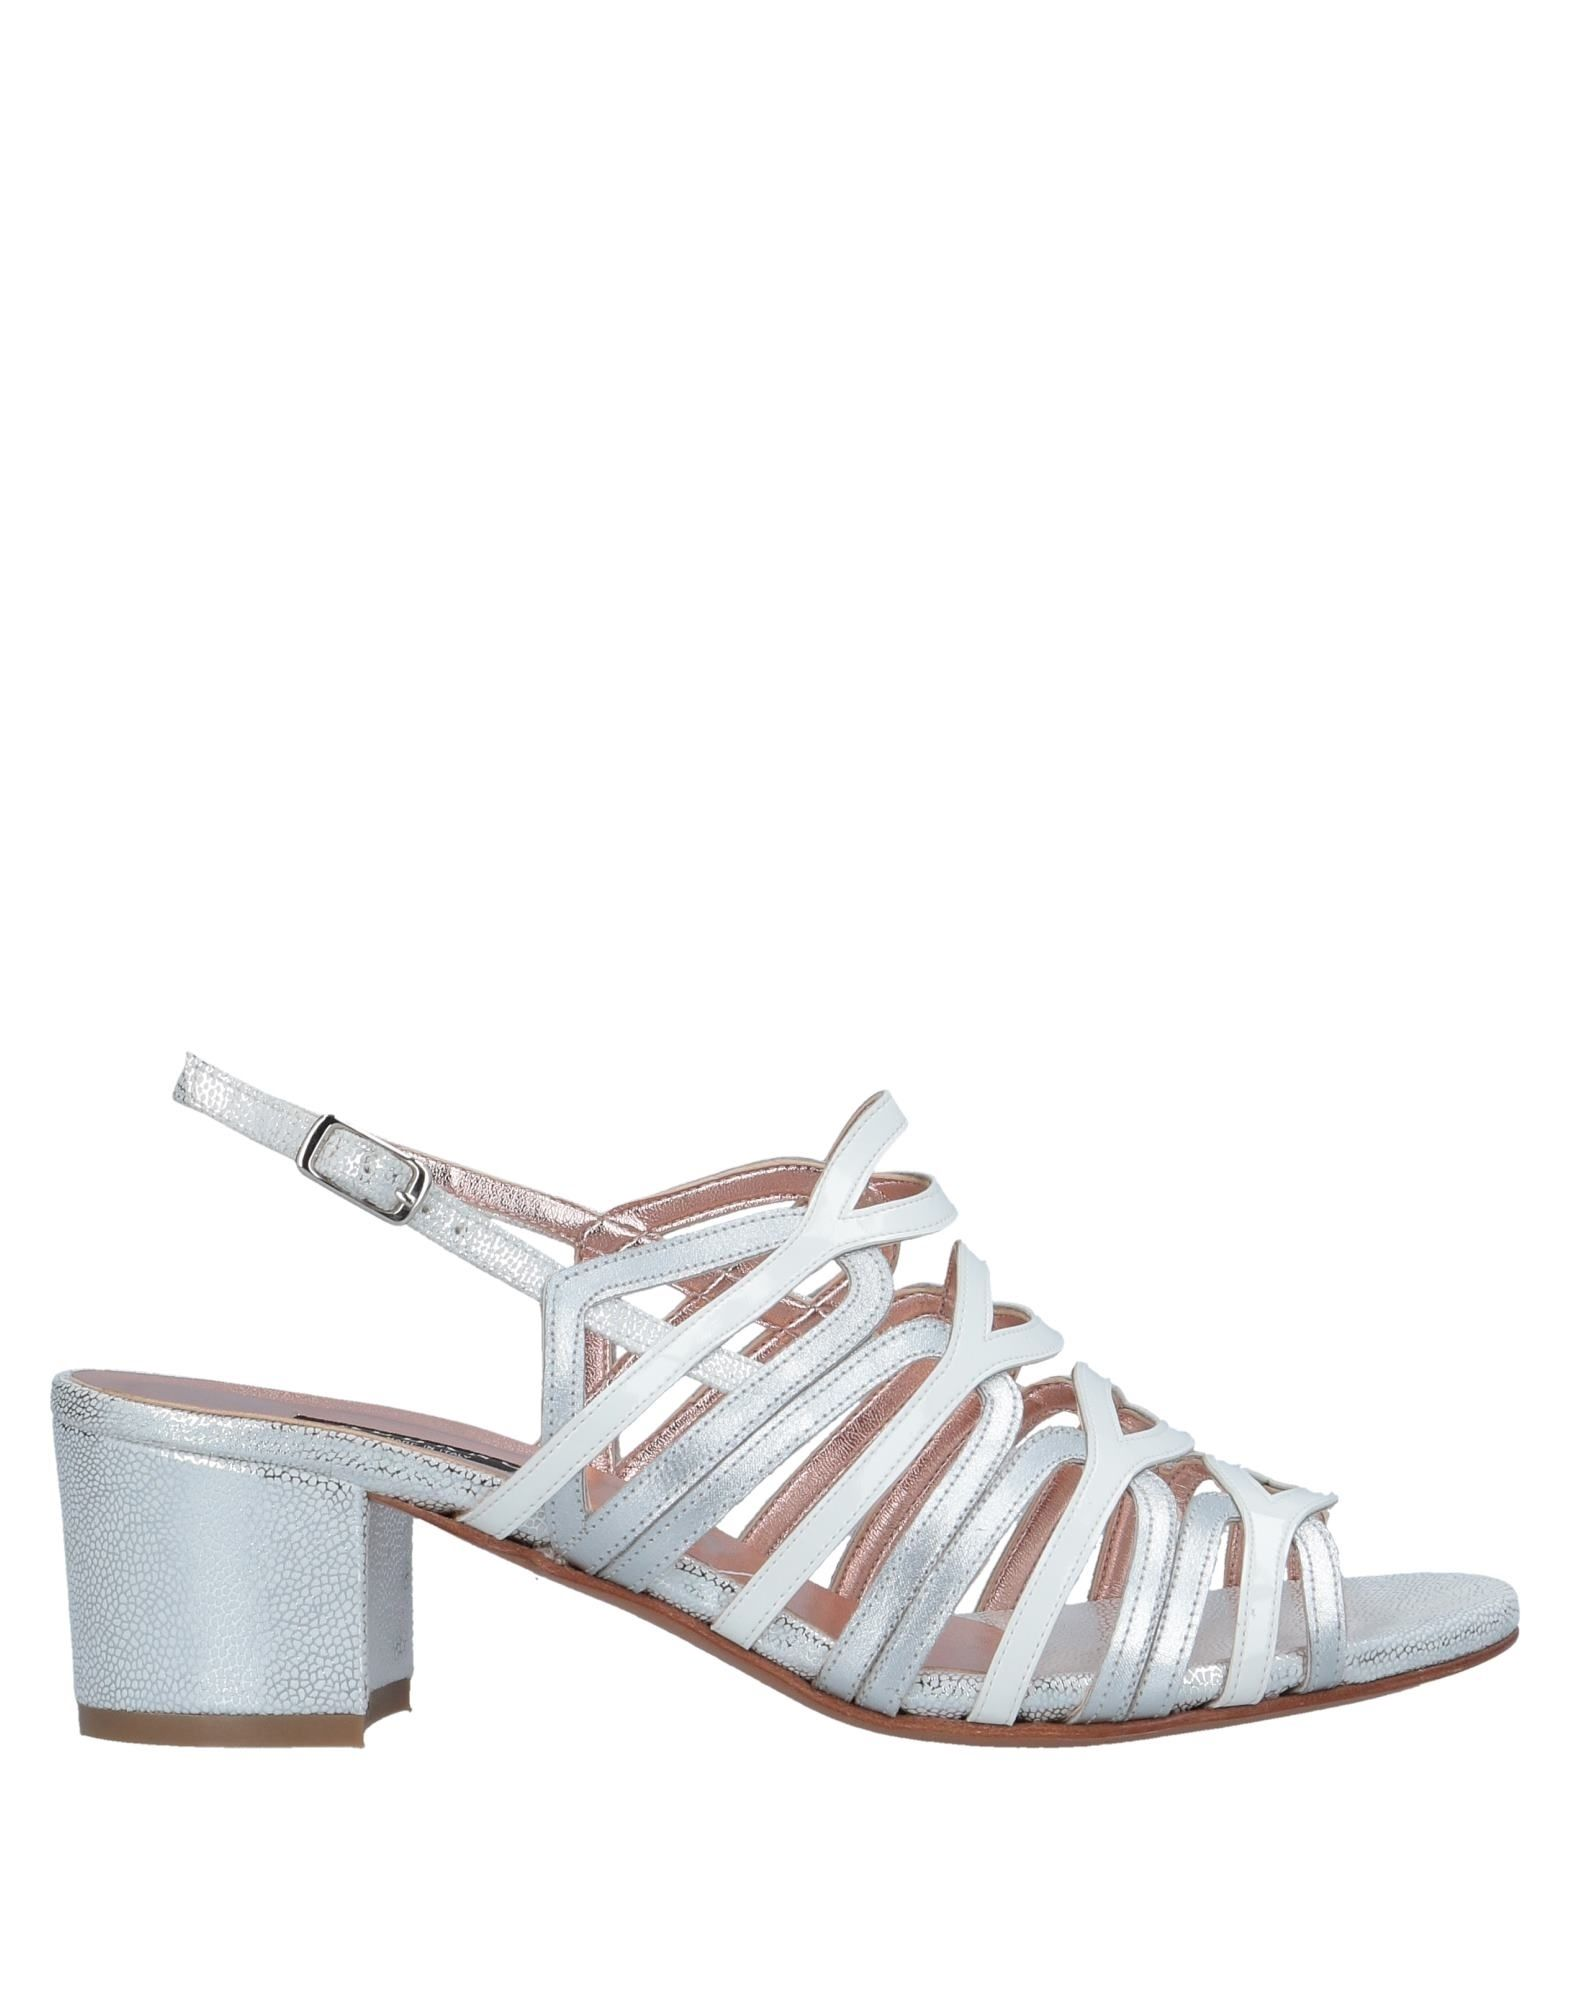 Albano Sandals - Women Albano United Sandals online on  United Albano Kingdom - 11532790OR 38ceec